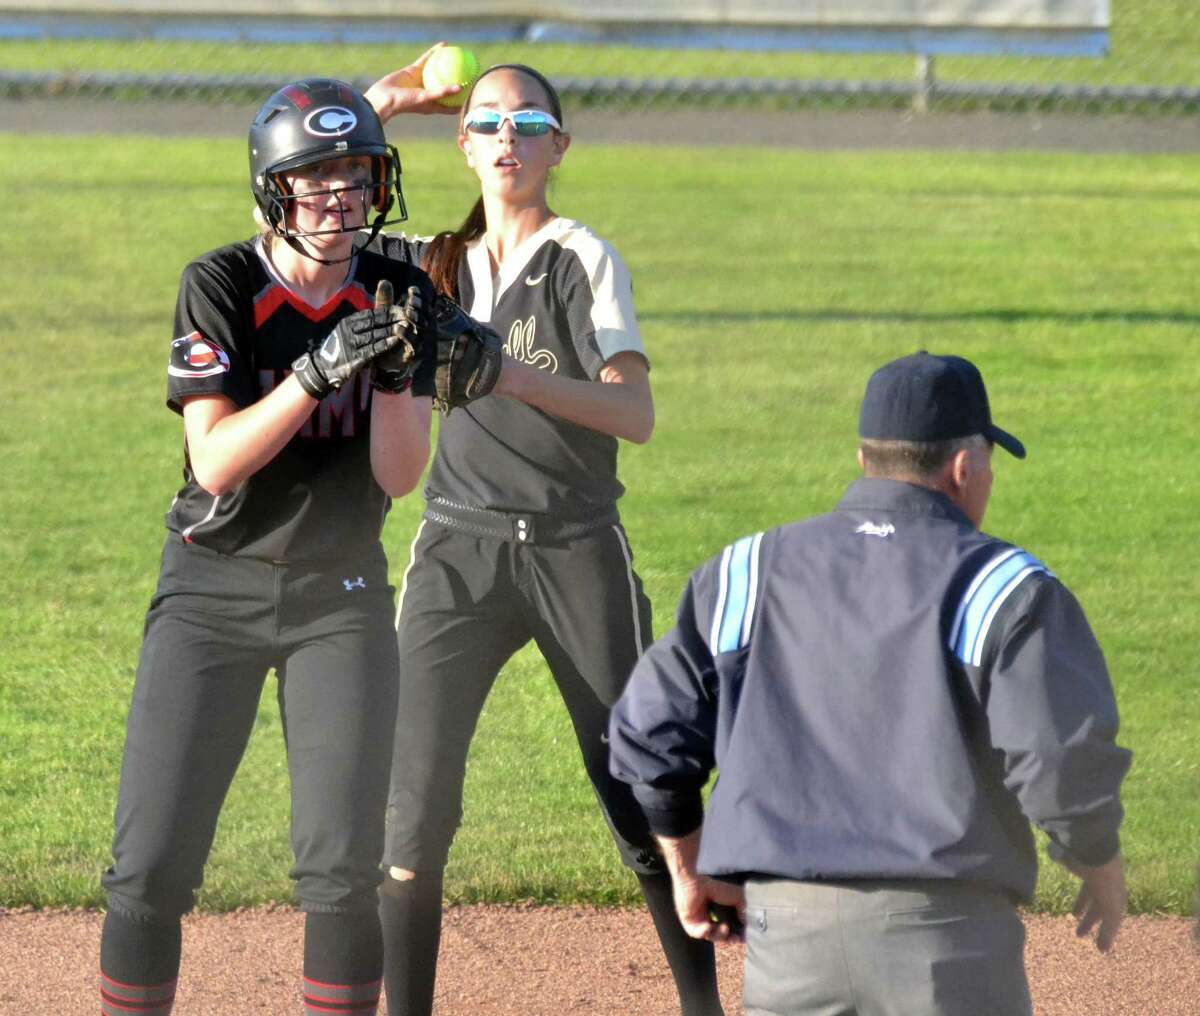 Cheshire's Mia Juodiatis claps after reaching second against Trumbull in Monday's Class LL semifinal.